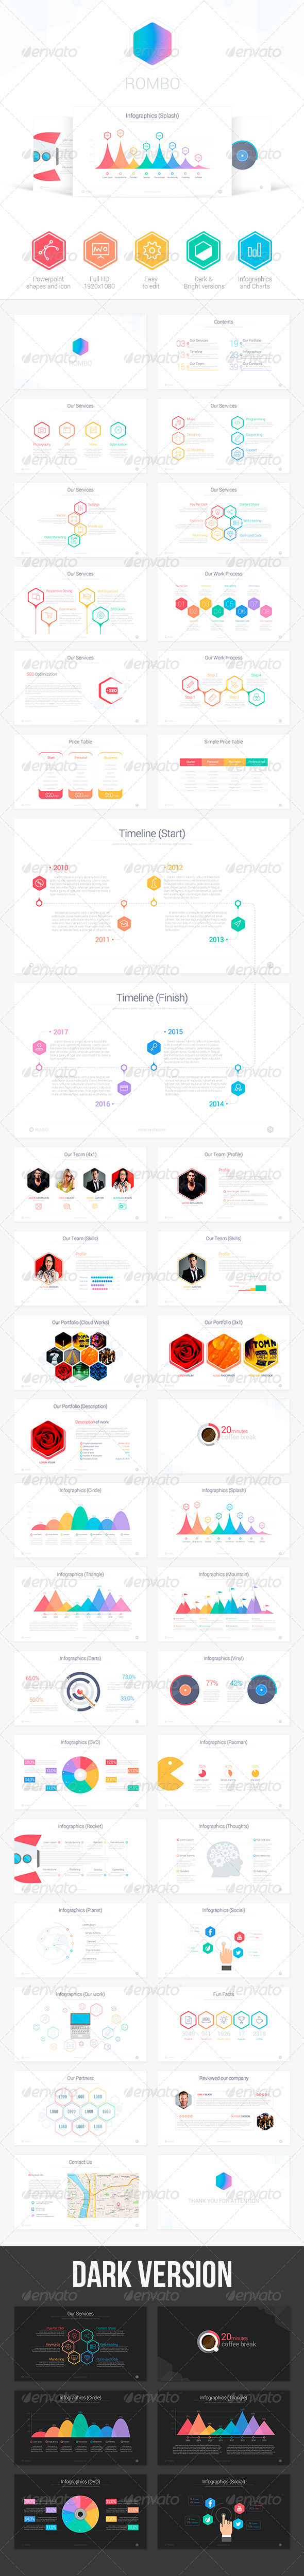 GraphicRiver Rombo Powerpoint Template 8637622